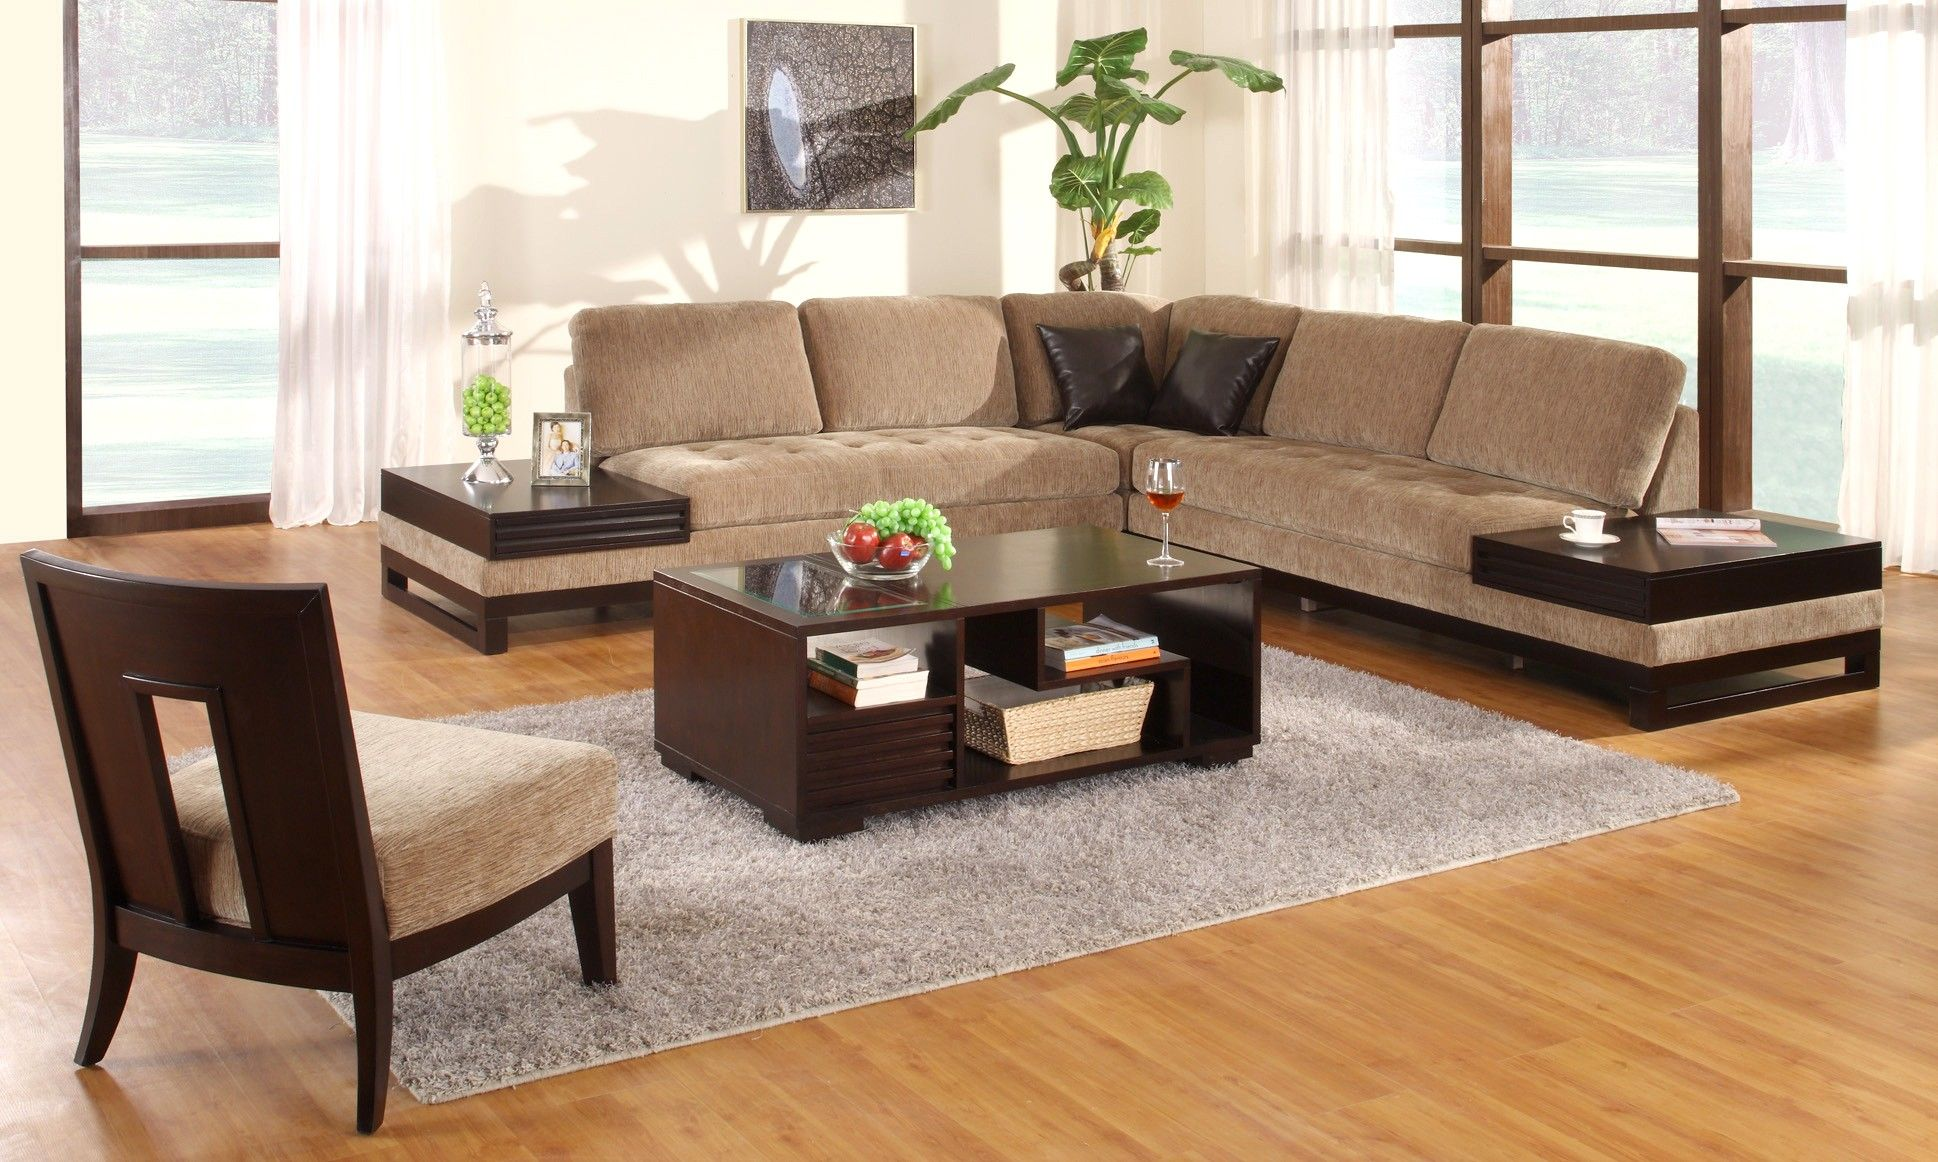 khiryco furniture living for cheap sofas room luxury chairs modern design sofa